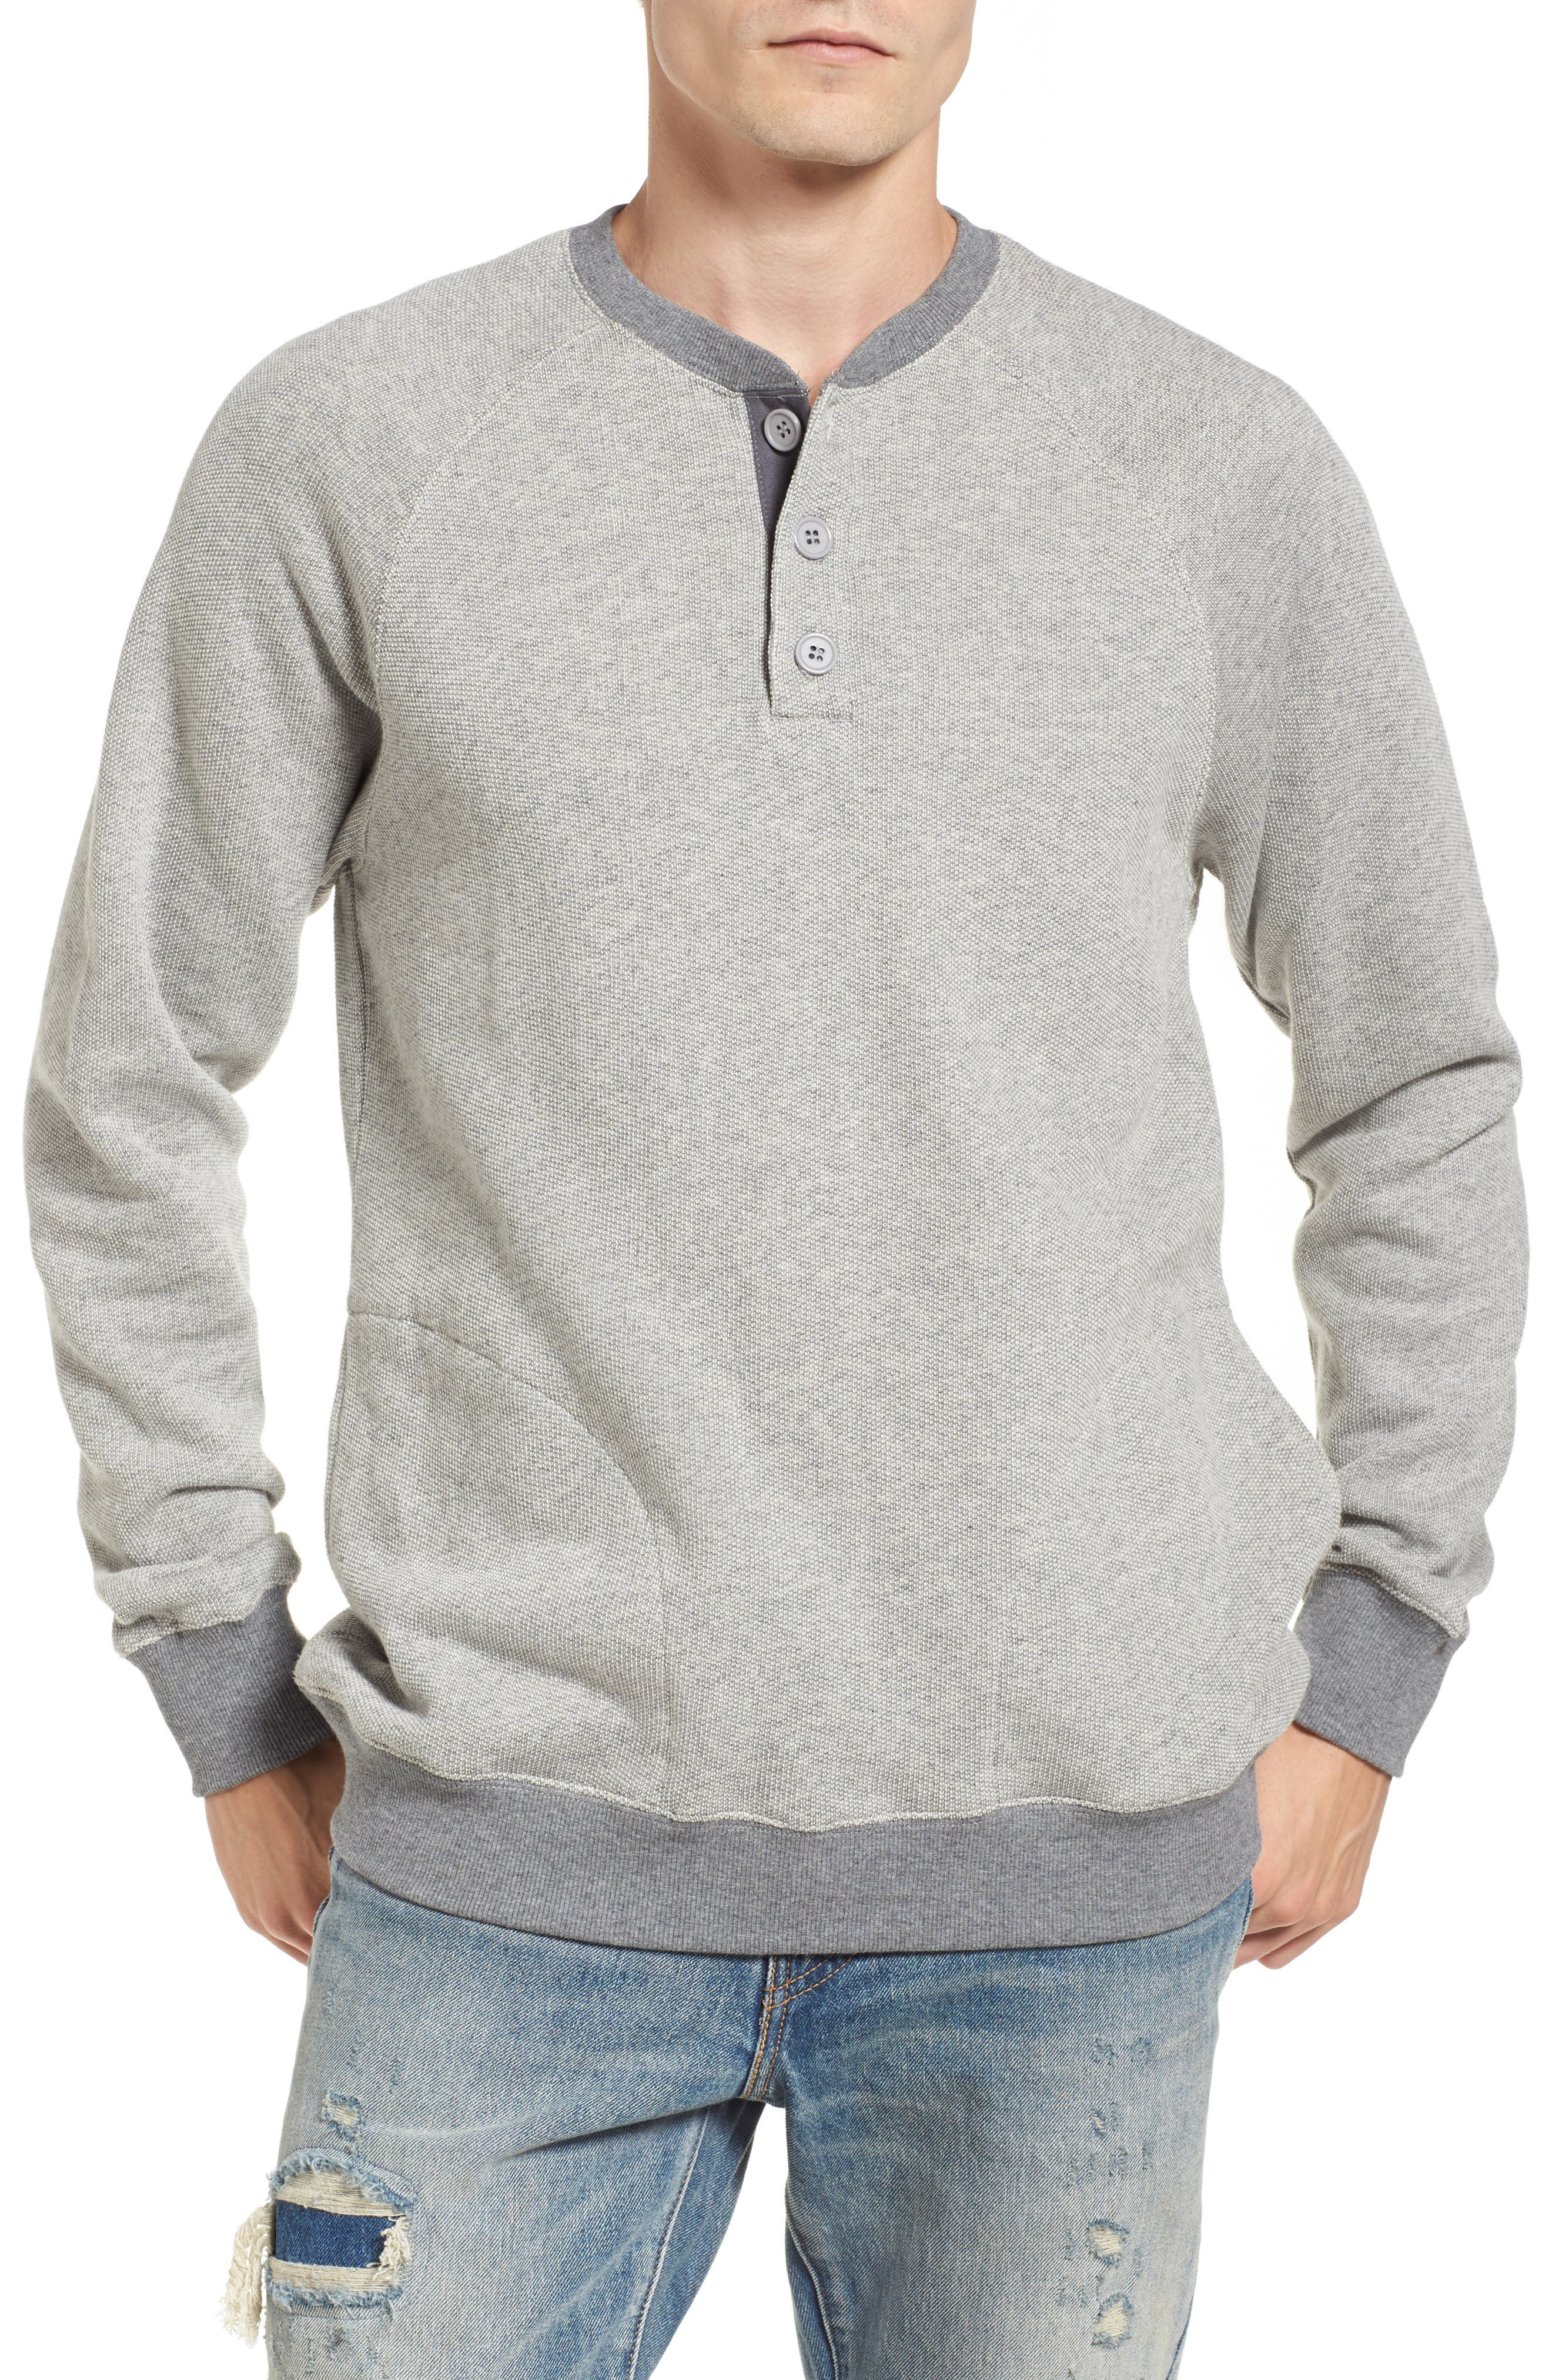 Capo Henley Pullover,                             Main thumbnail 1, color,                             051